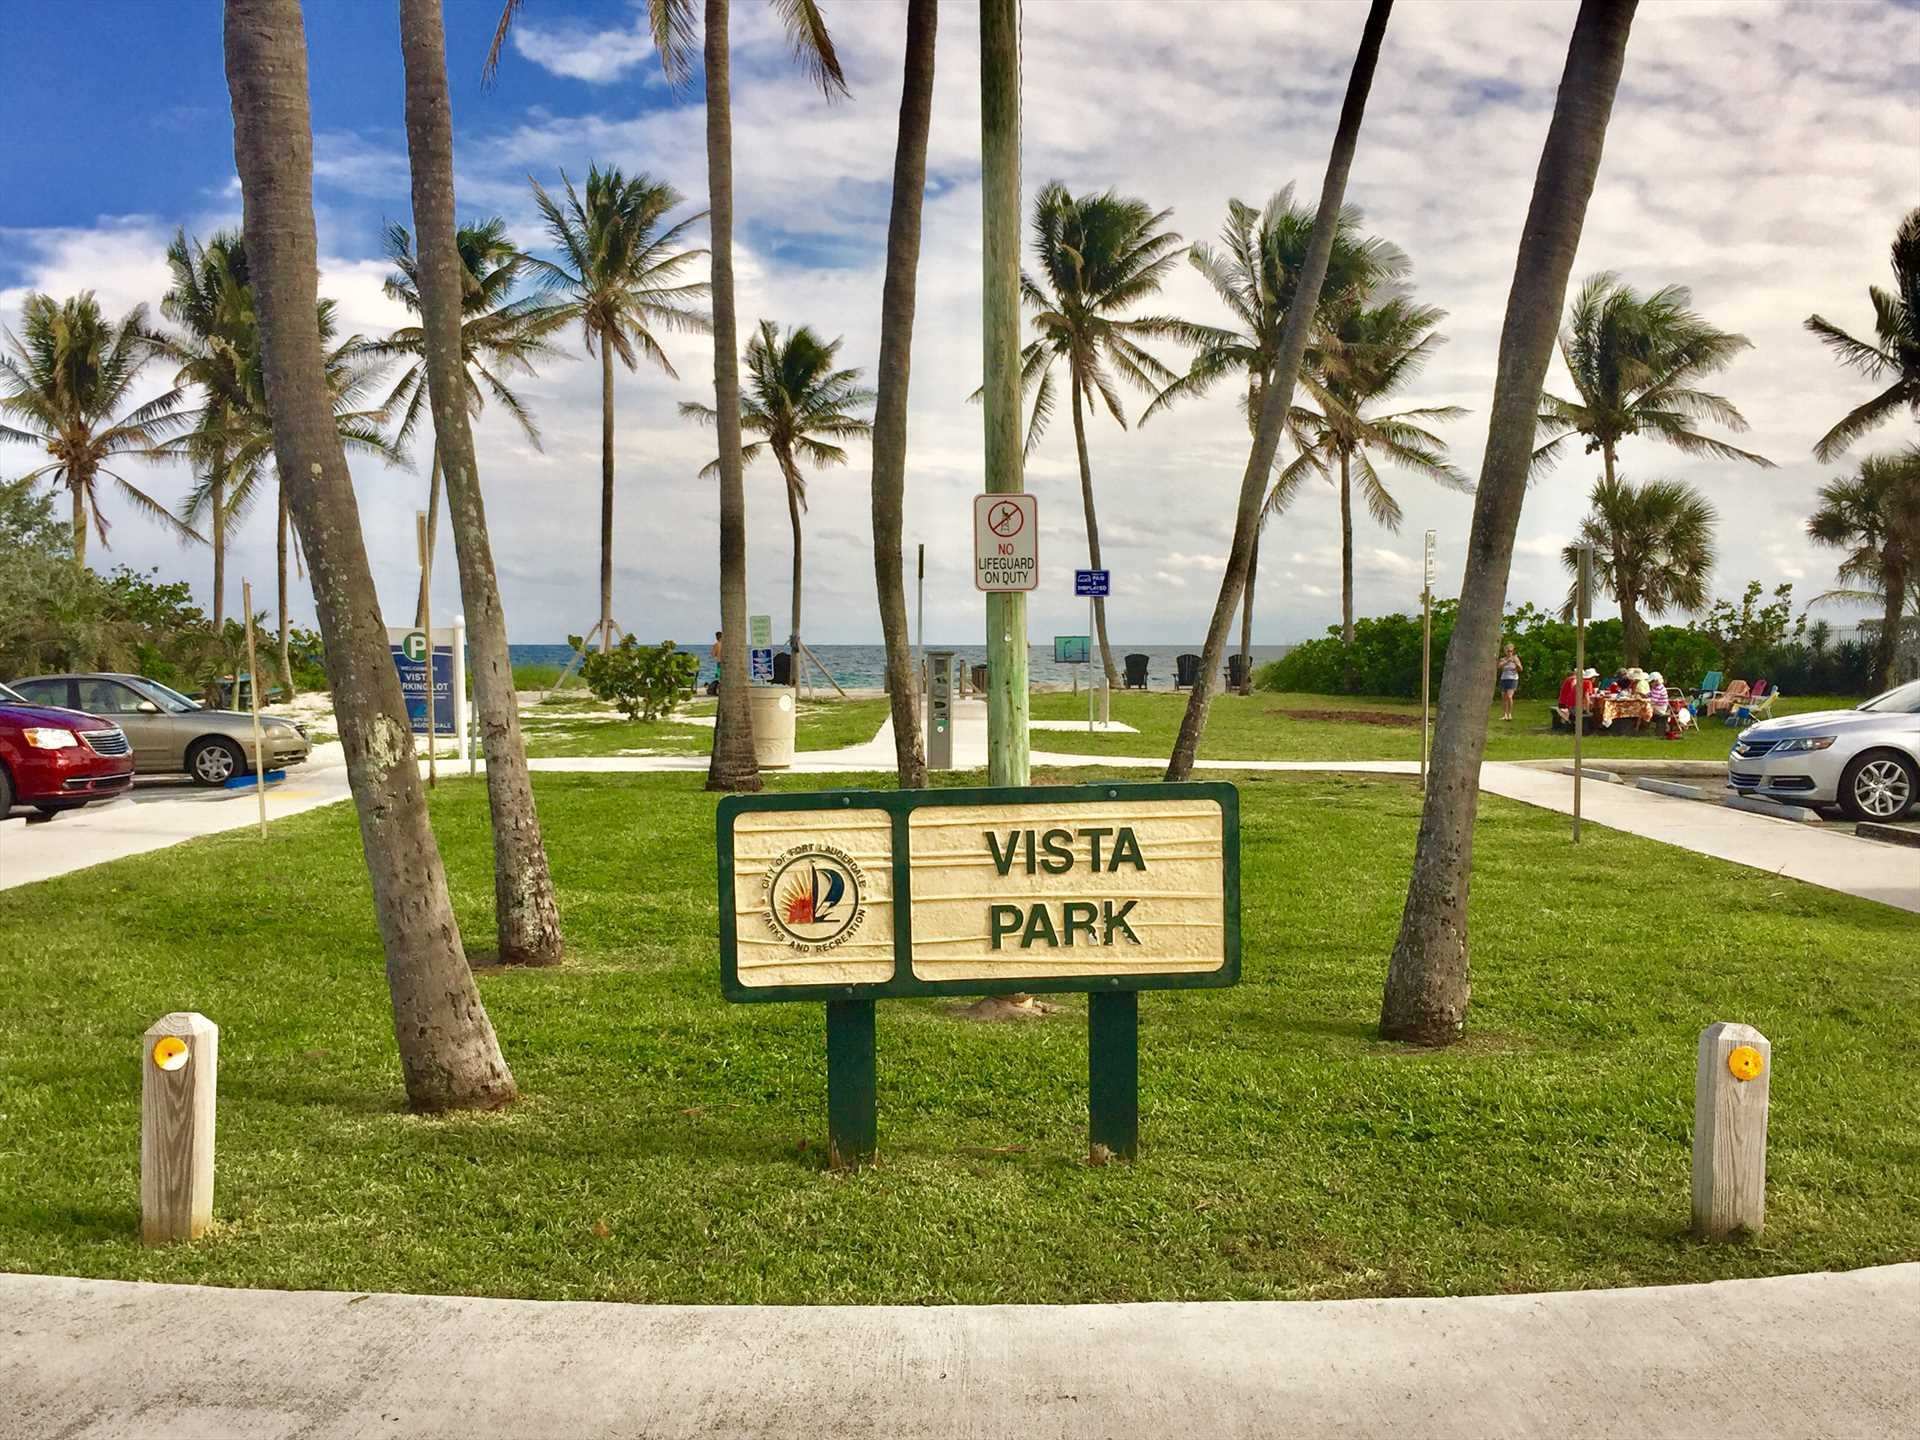 One of the main beach entrances of Vista Park is just one ha